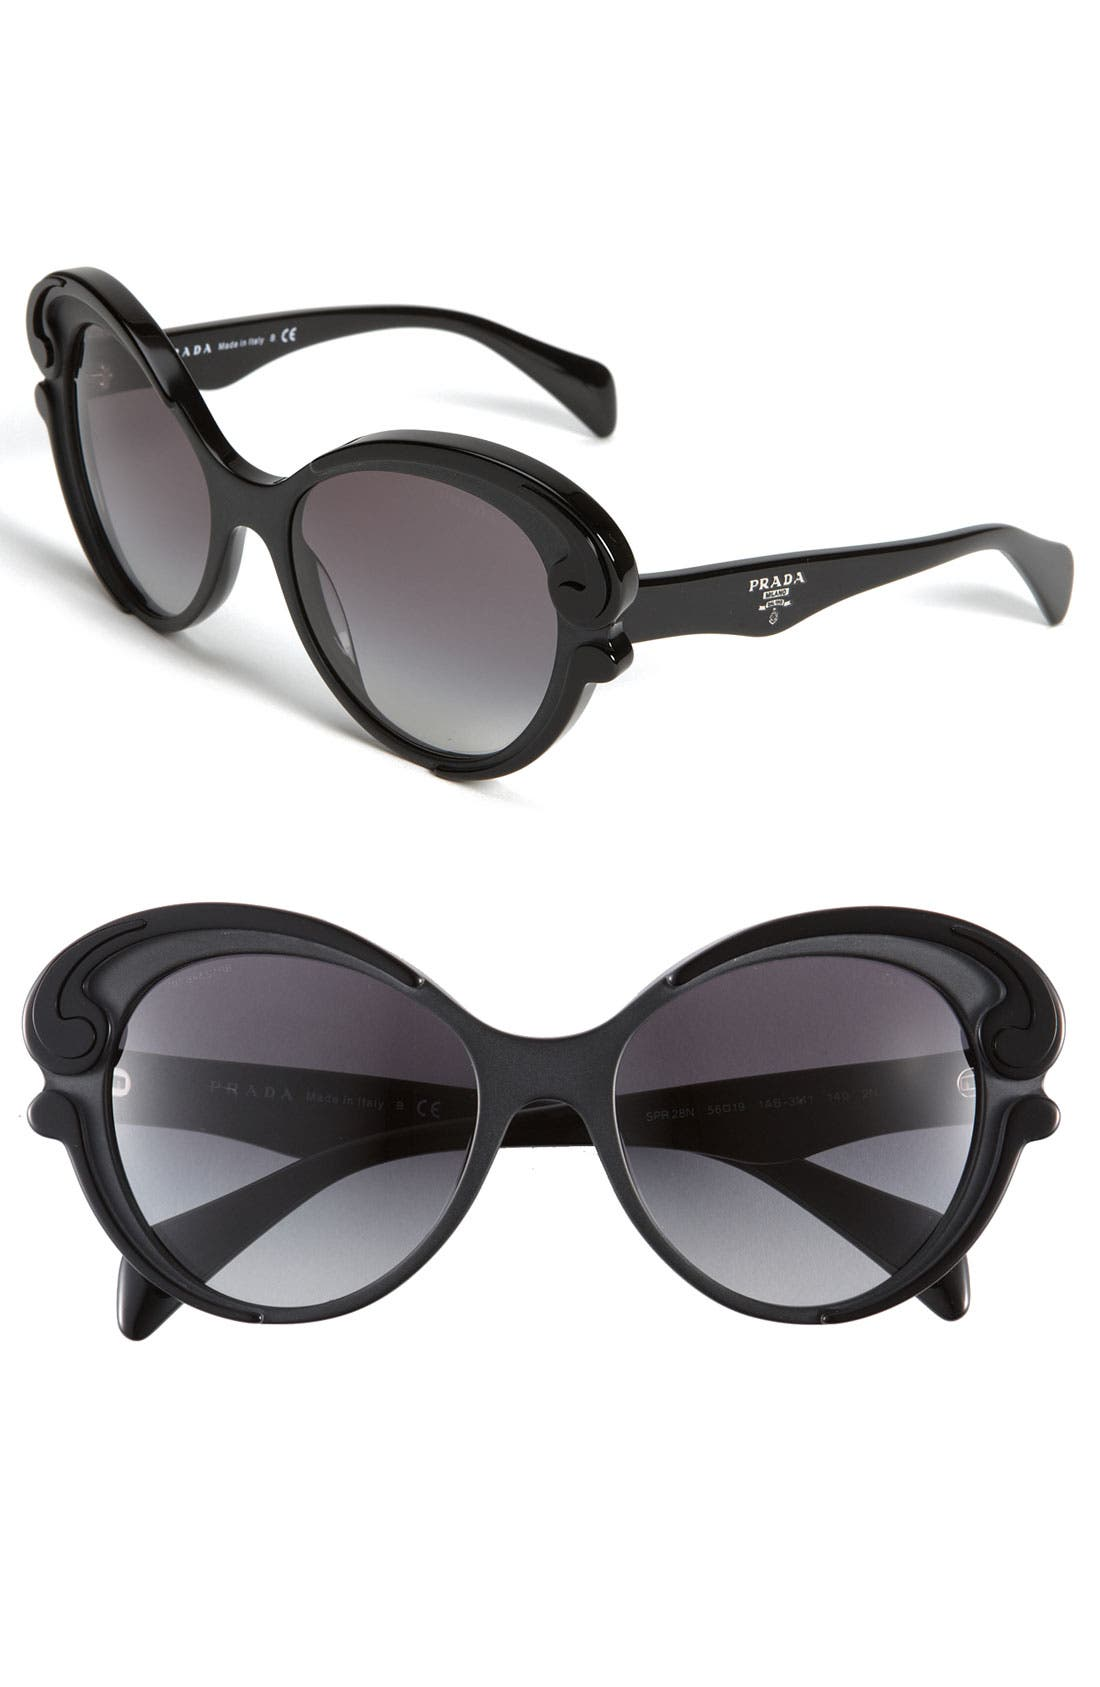 Main Image - Prada 'Baroque' Cat's Eye Sunglasses